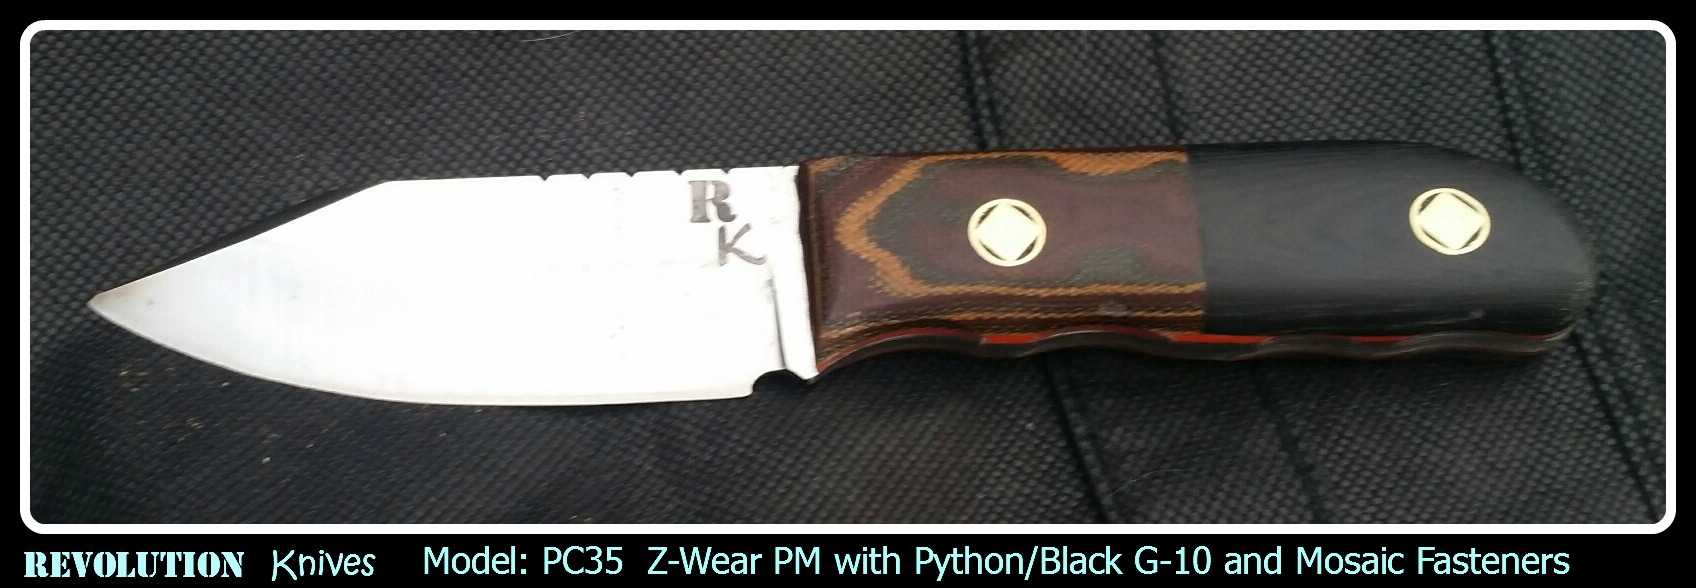 PC35  Z-Wear PM with Python/Black G-10 and Mosaic Fasteners